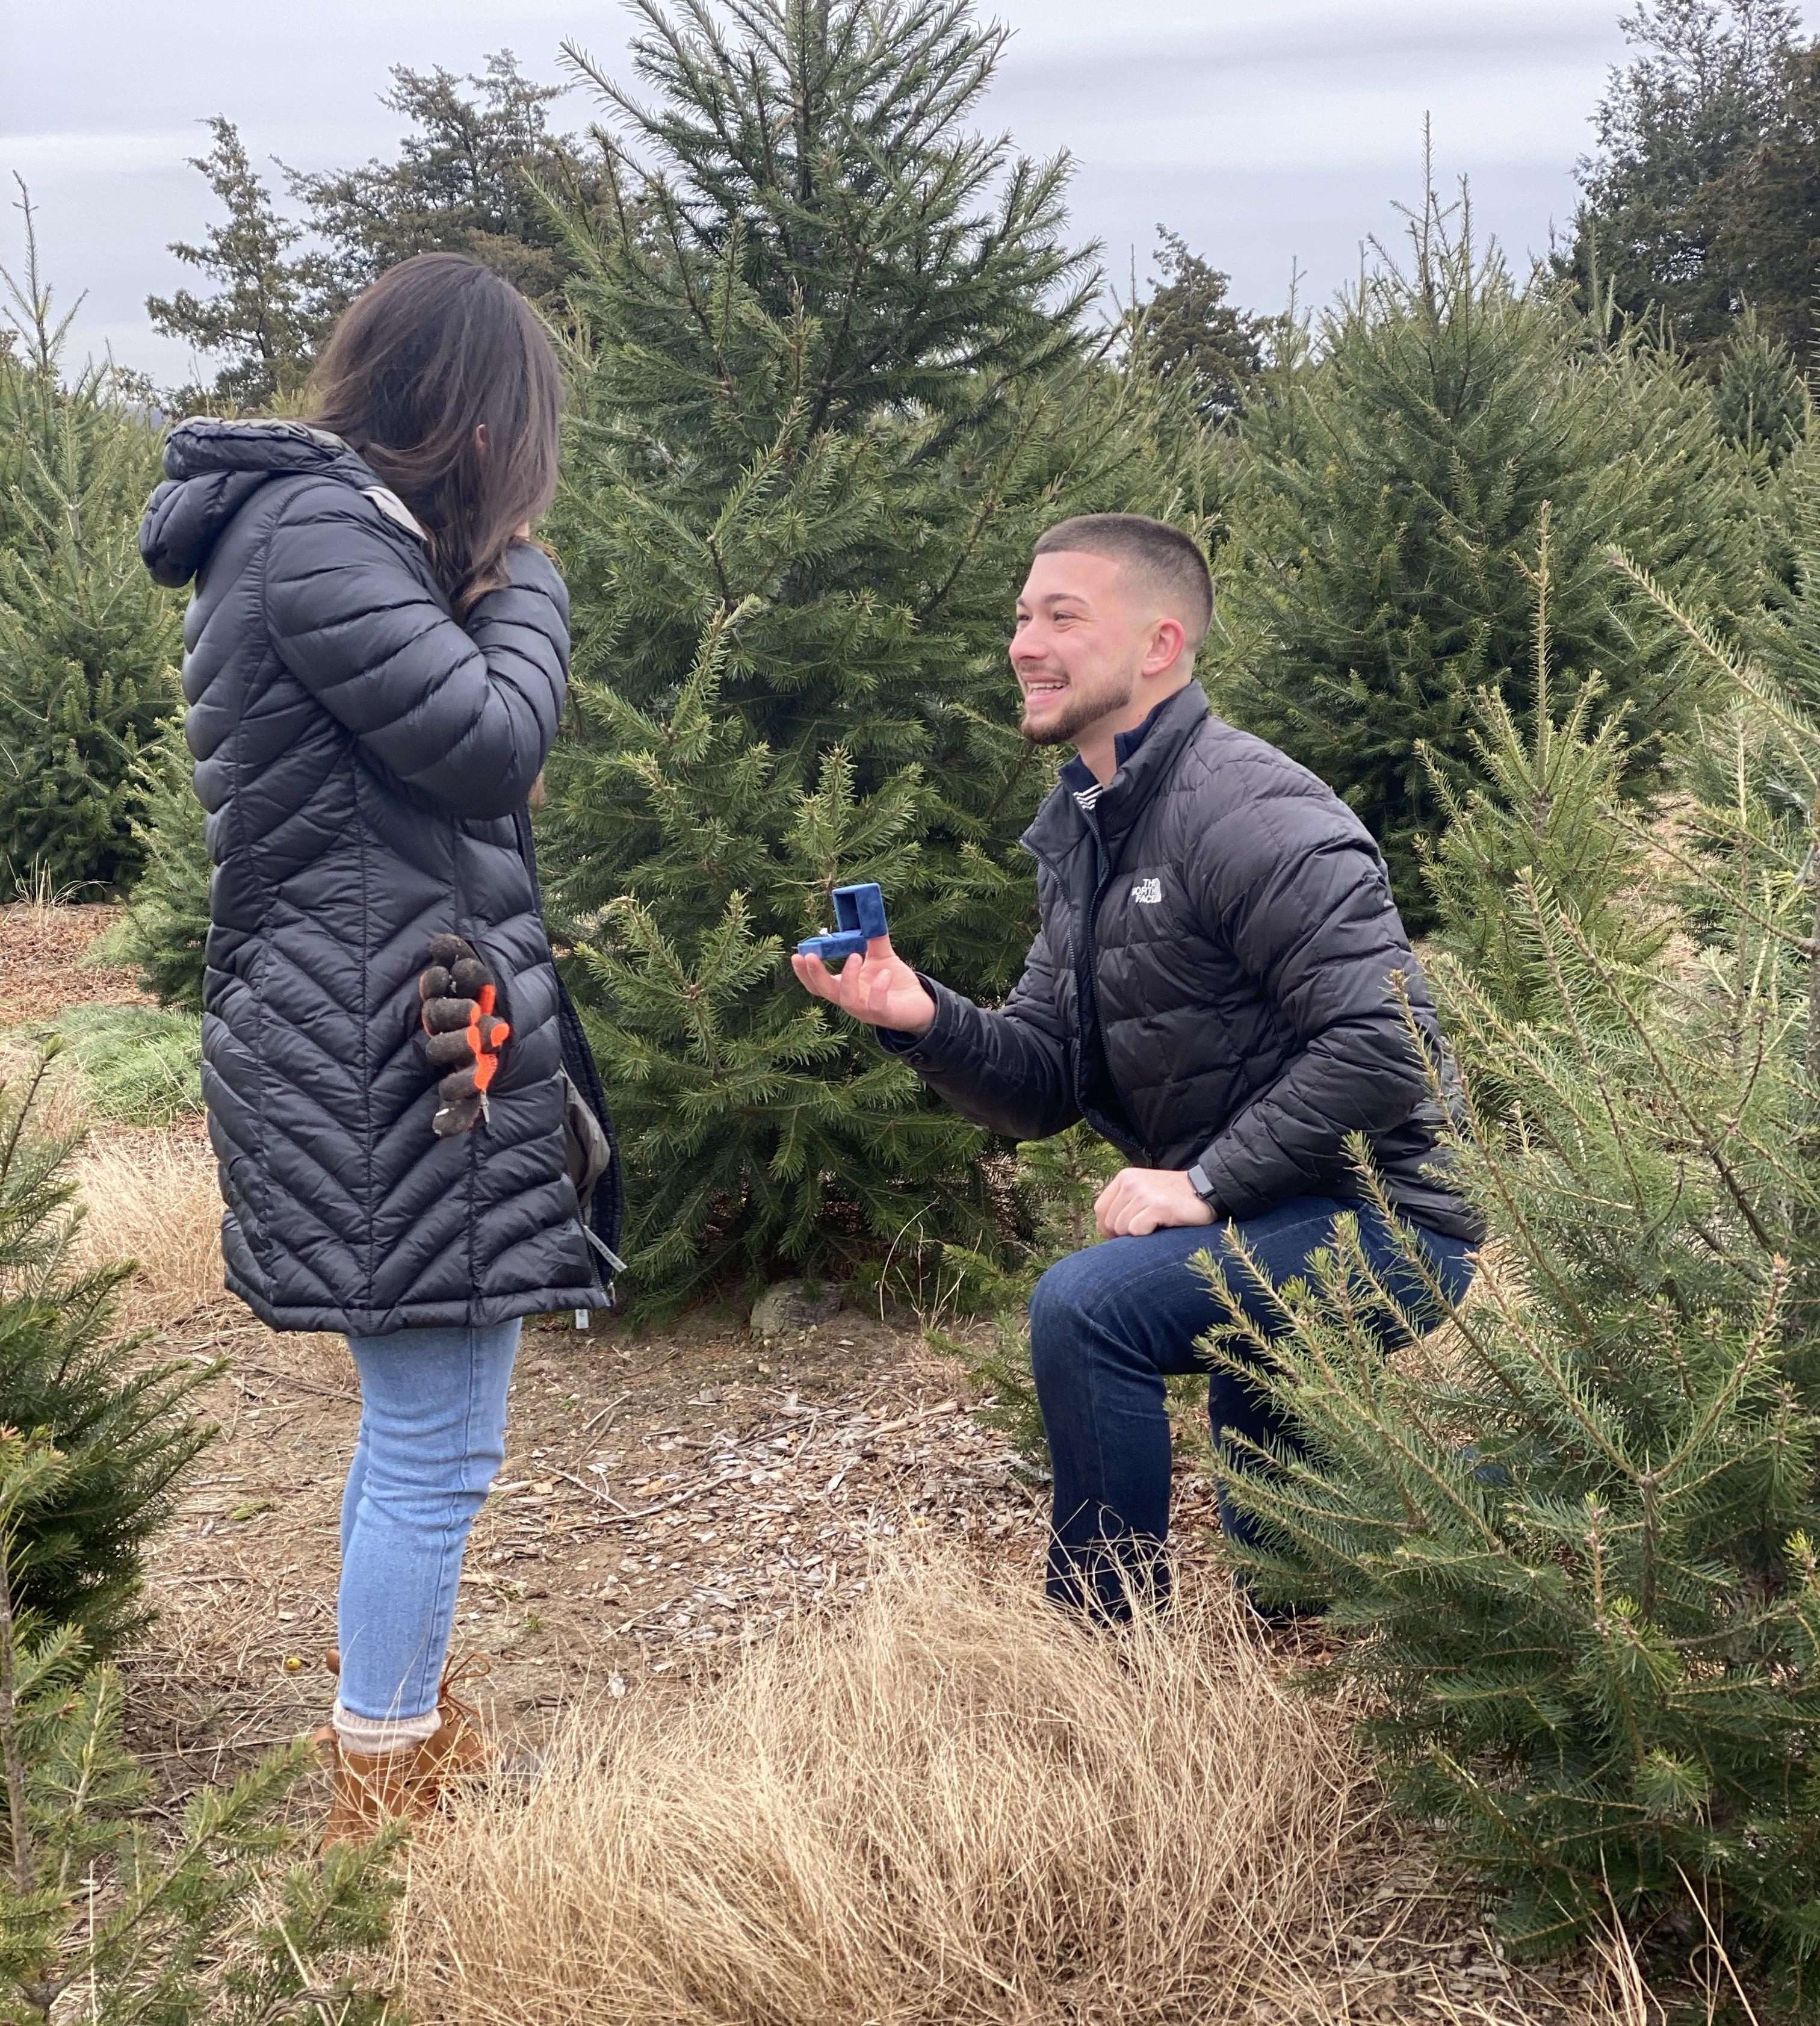 Alexandria and Criag's Engagement in Jones family tree farm